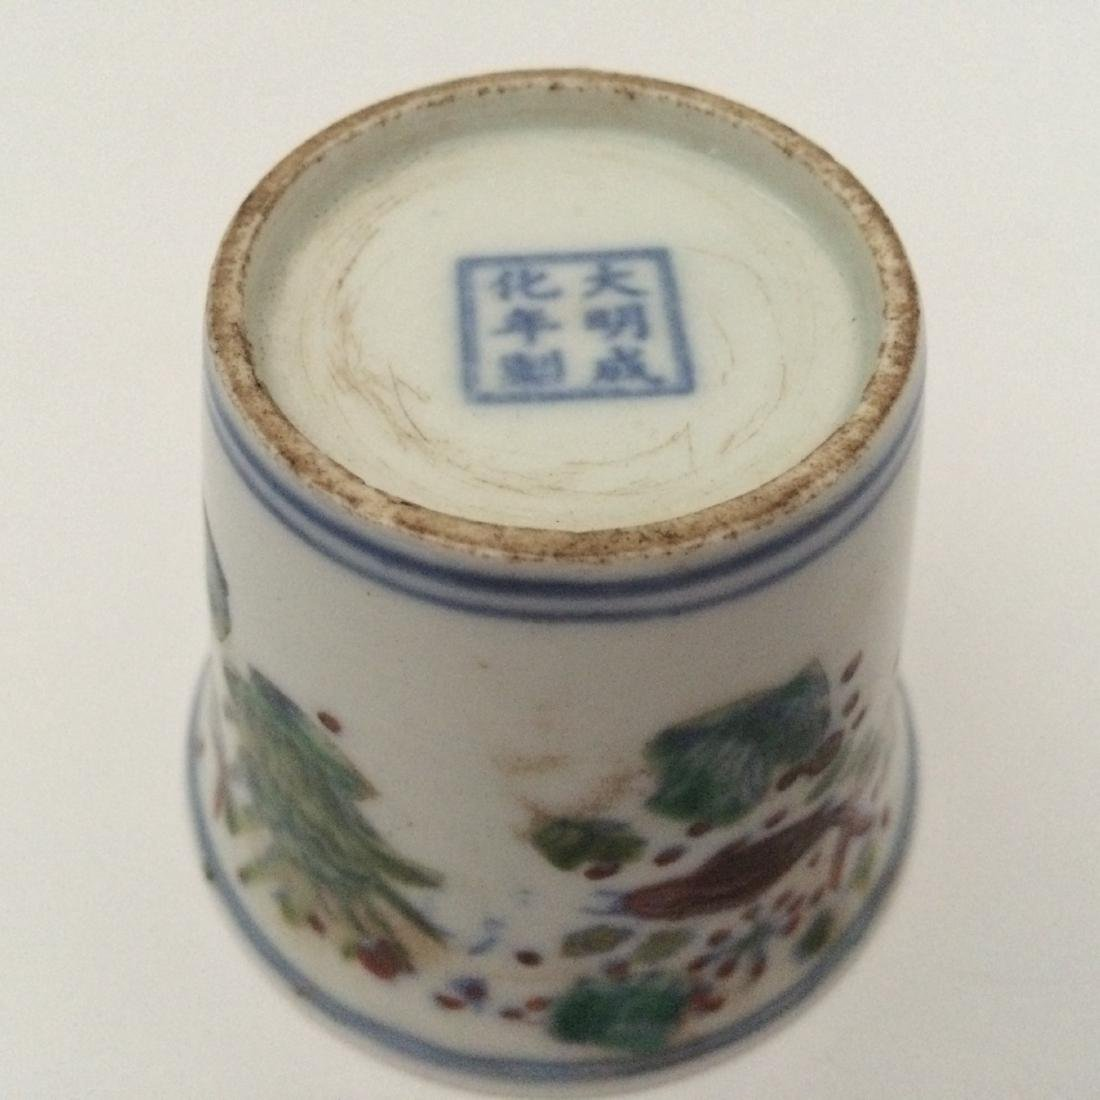 Dou Cai Cup with Chin Hua Mark, Fish Design - 3